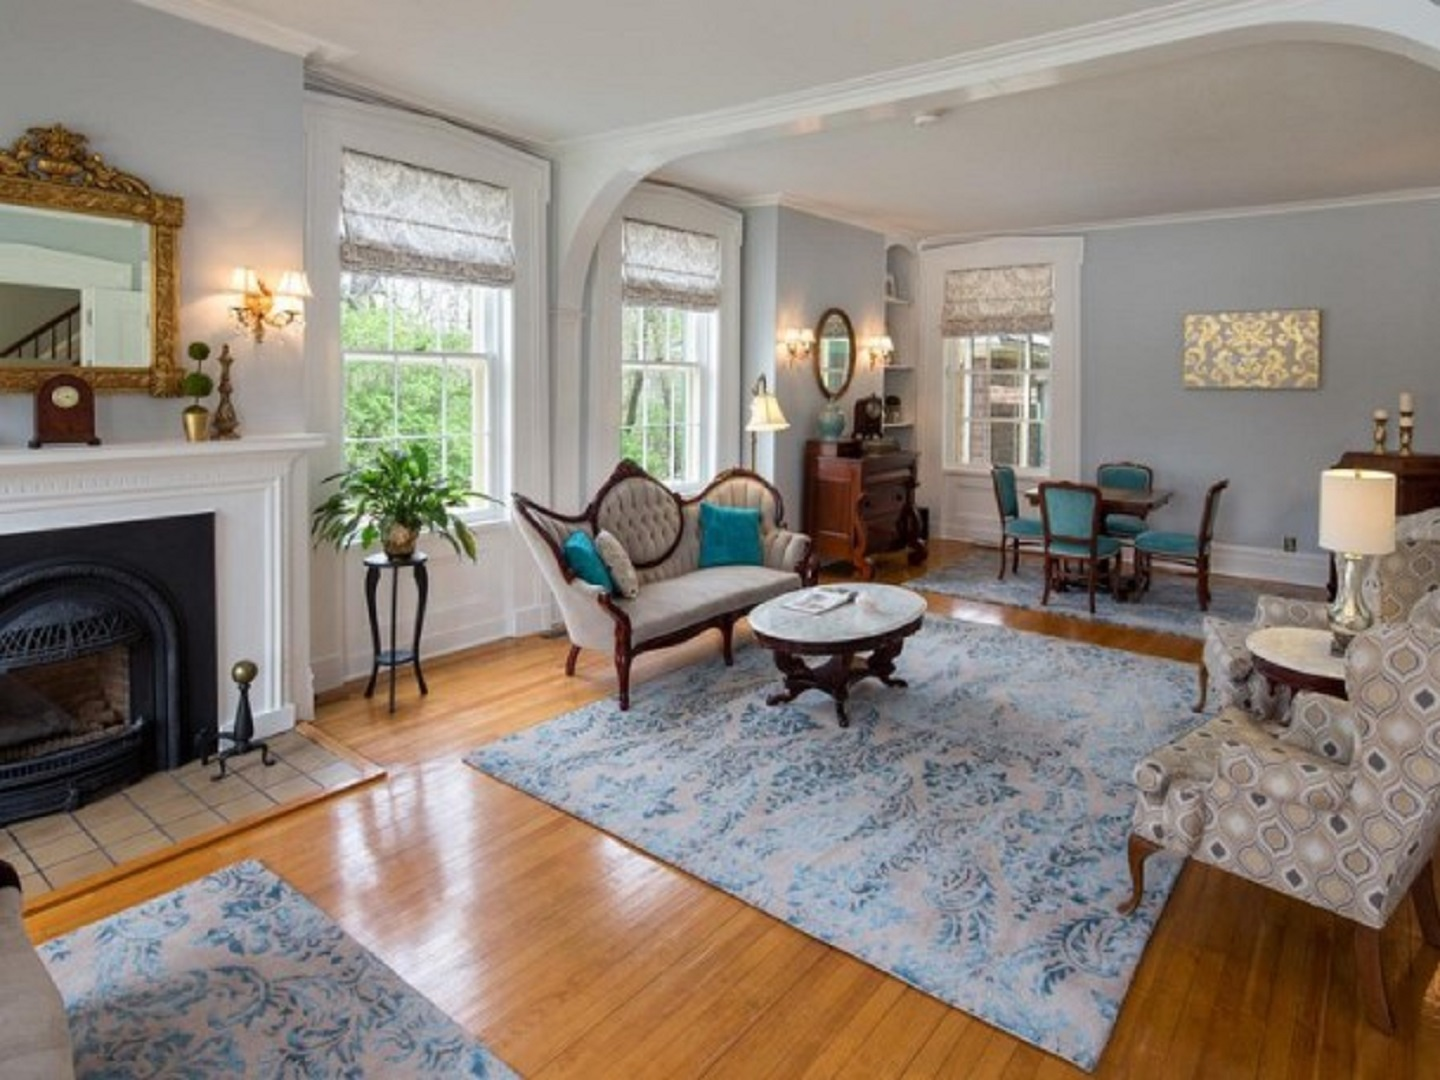 A living room filled with furniture and a fire place at Aldrich House Bed & Breakfast.